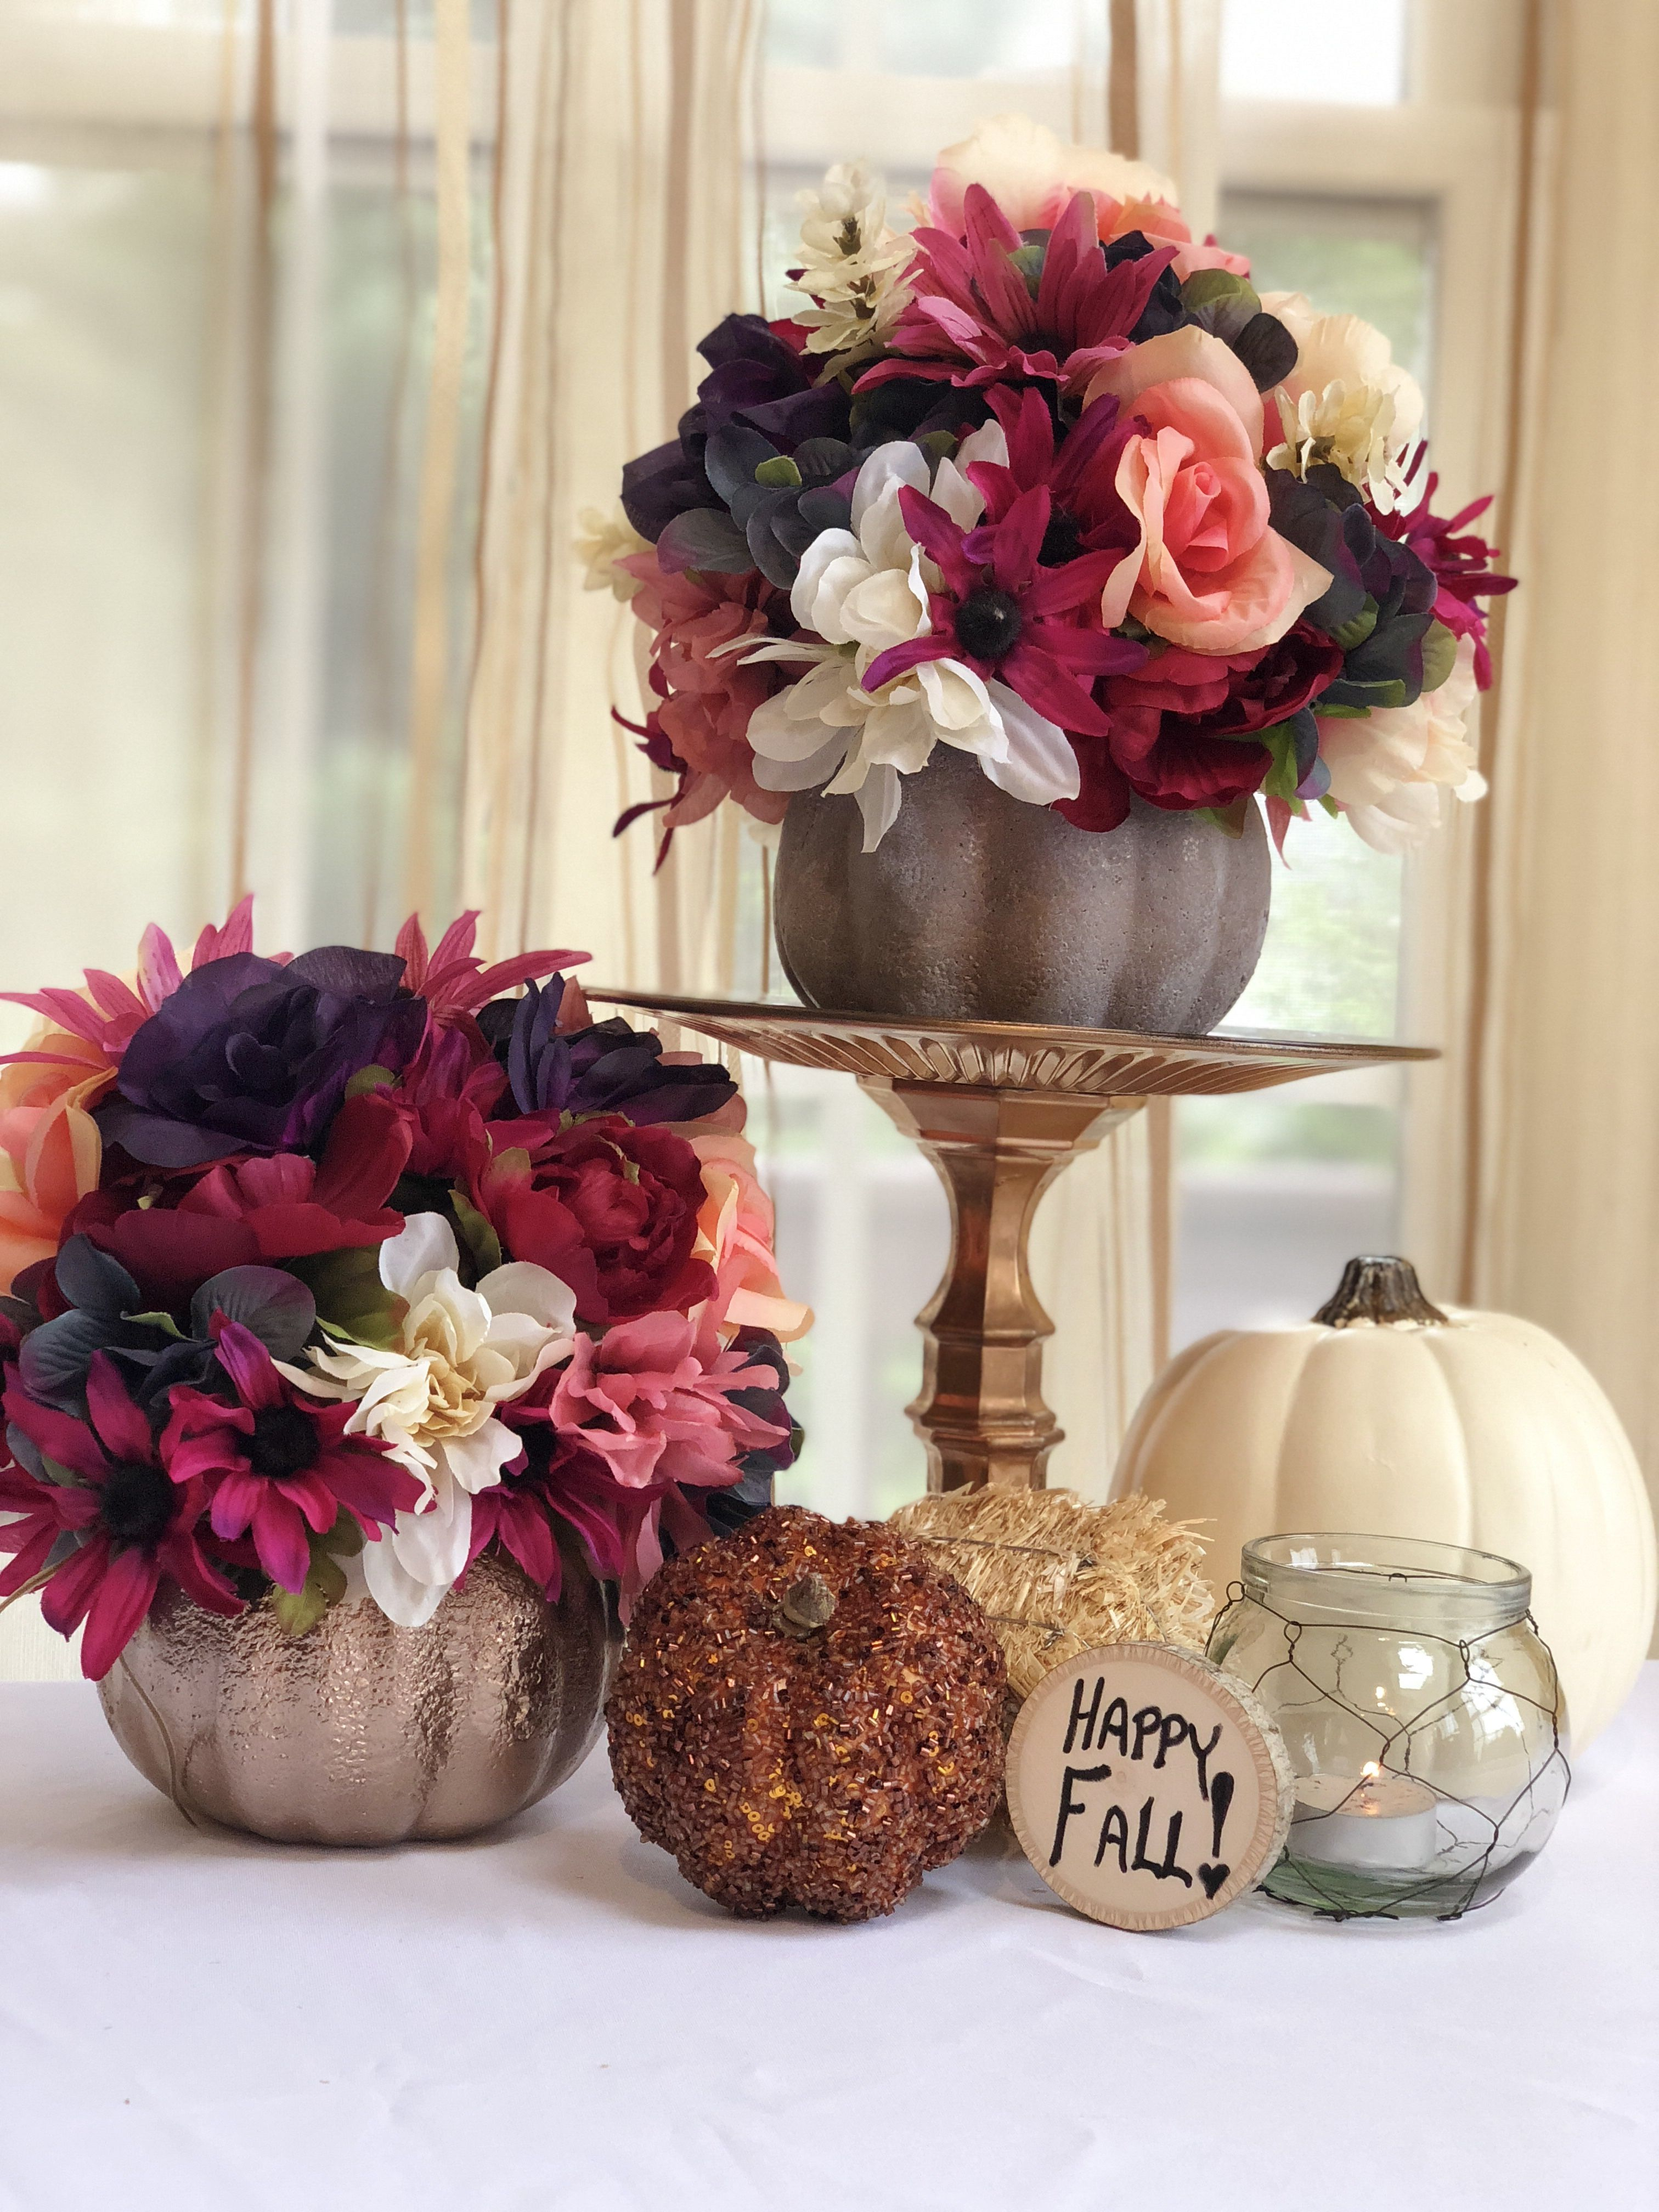 Dollar Tree DIY Centerpiece Ideas with Fall Flowers and